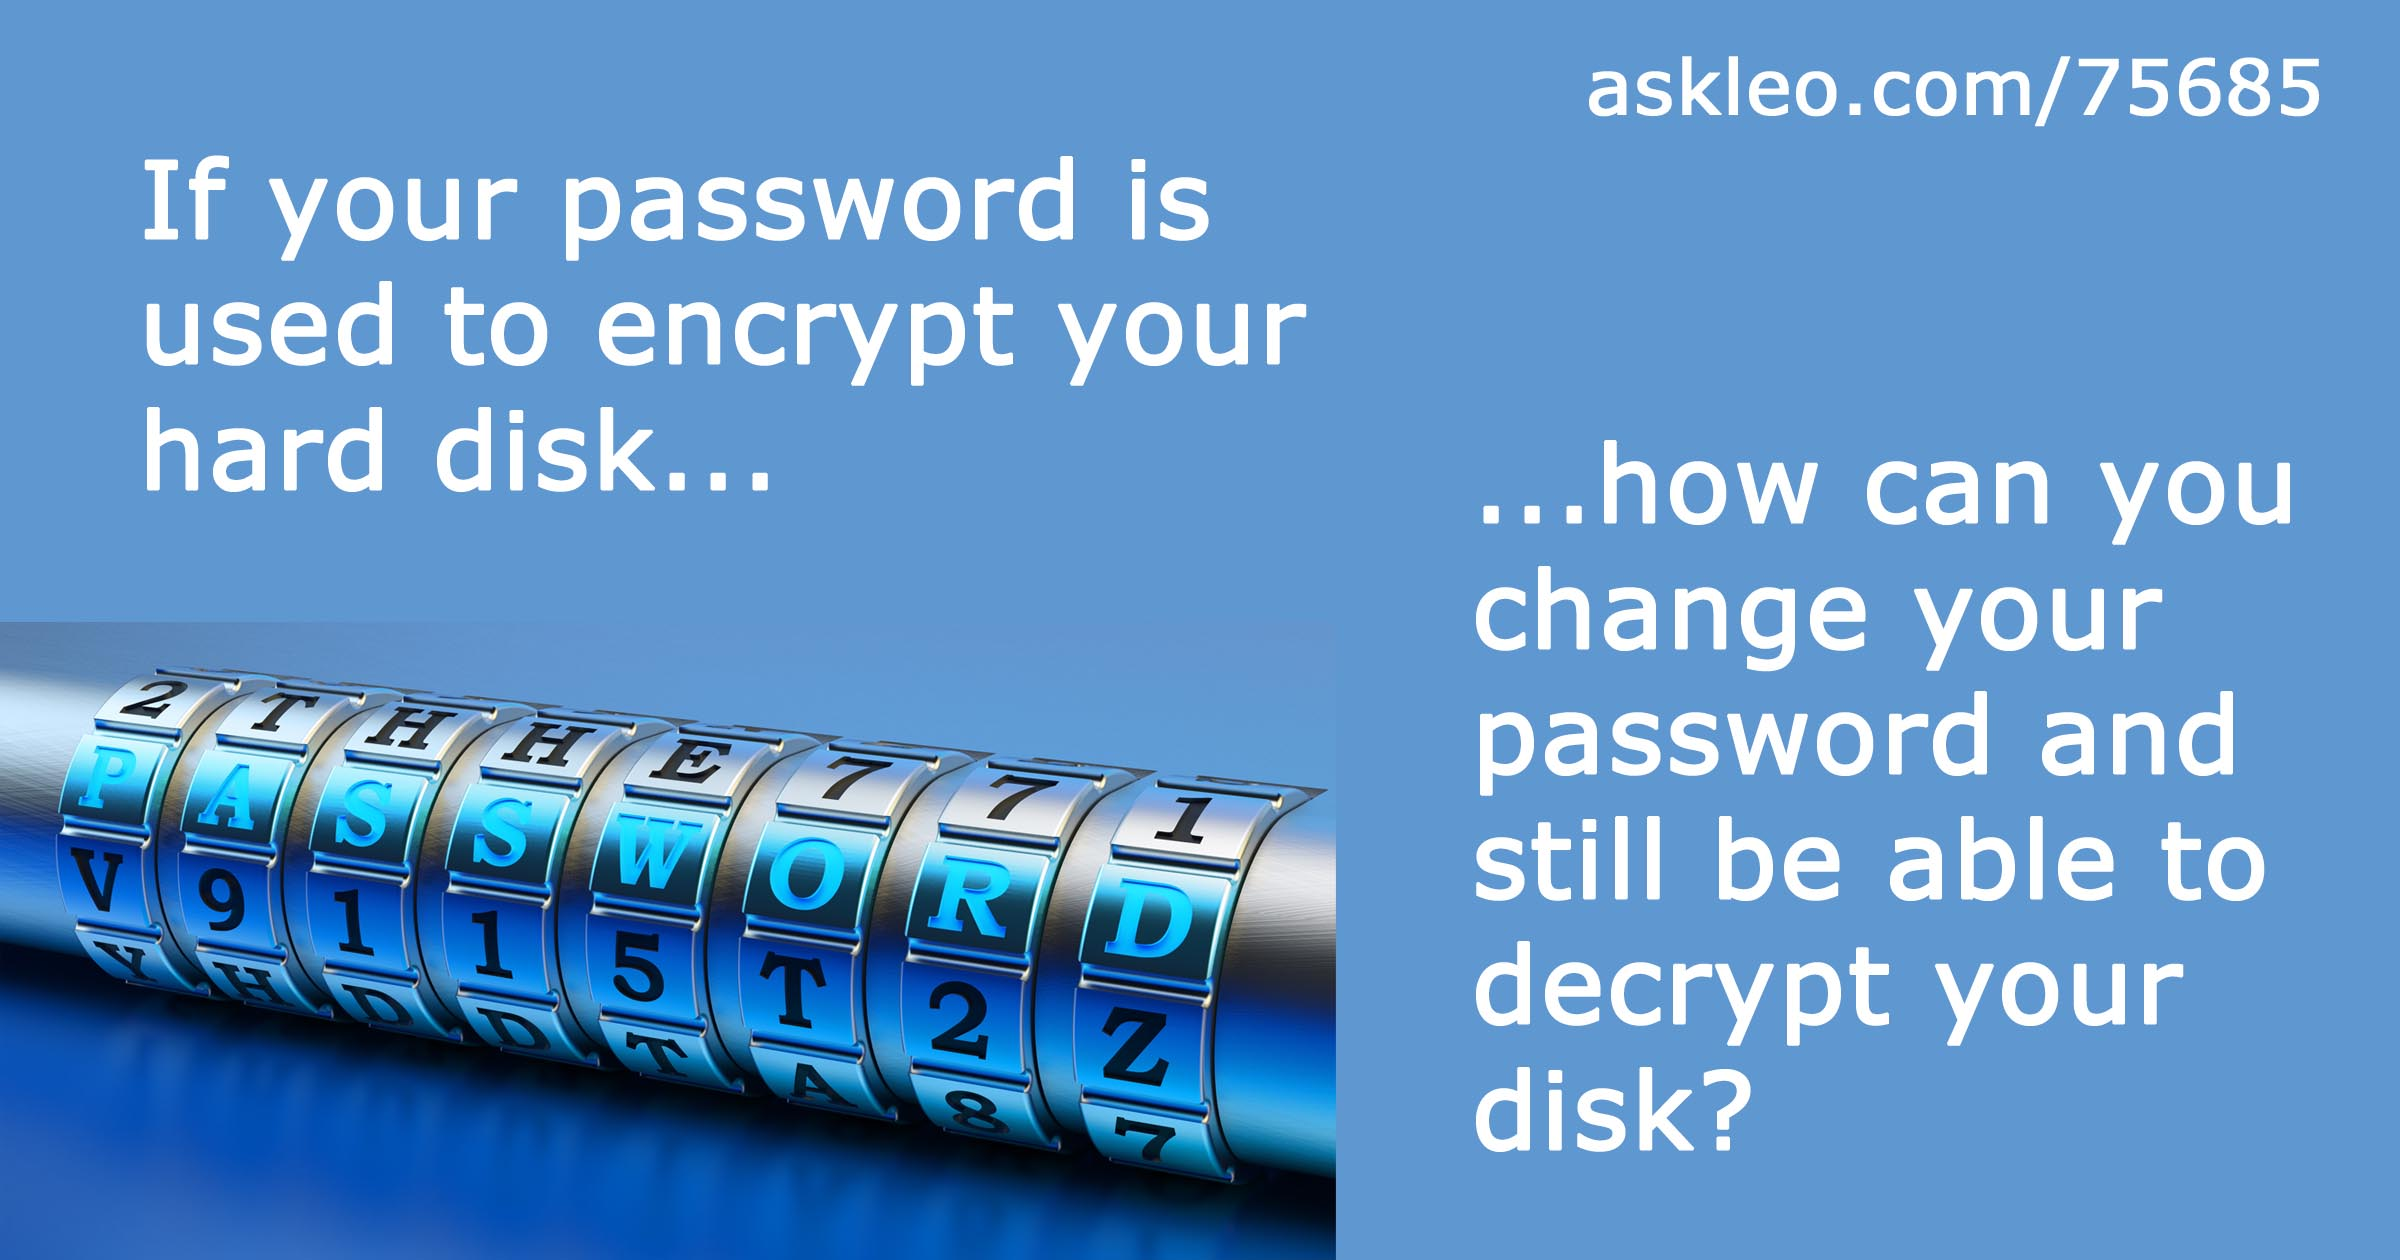 How Is it Possible to Change a Password Without Re-encrypting an Encrypted Disk?